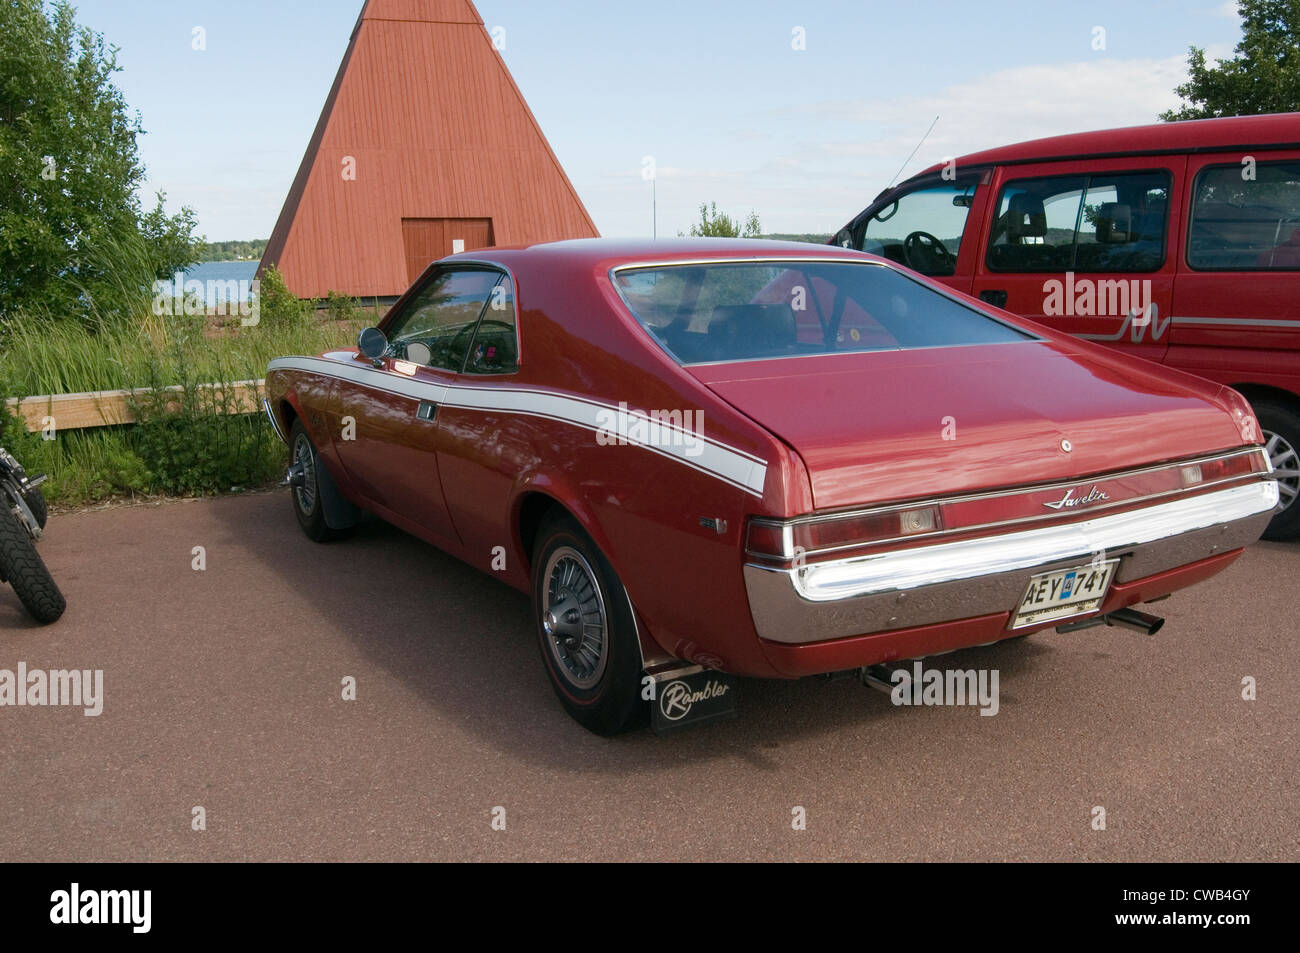 1968 Amc Javelin Muscle Car Pony Cars Classic American Stock Photo